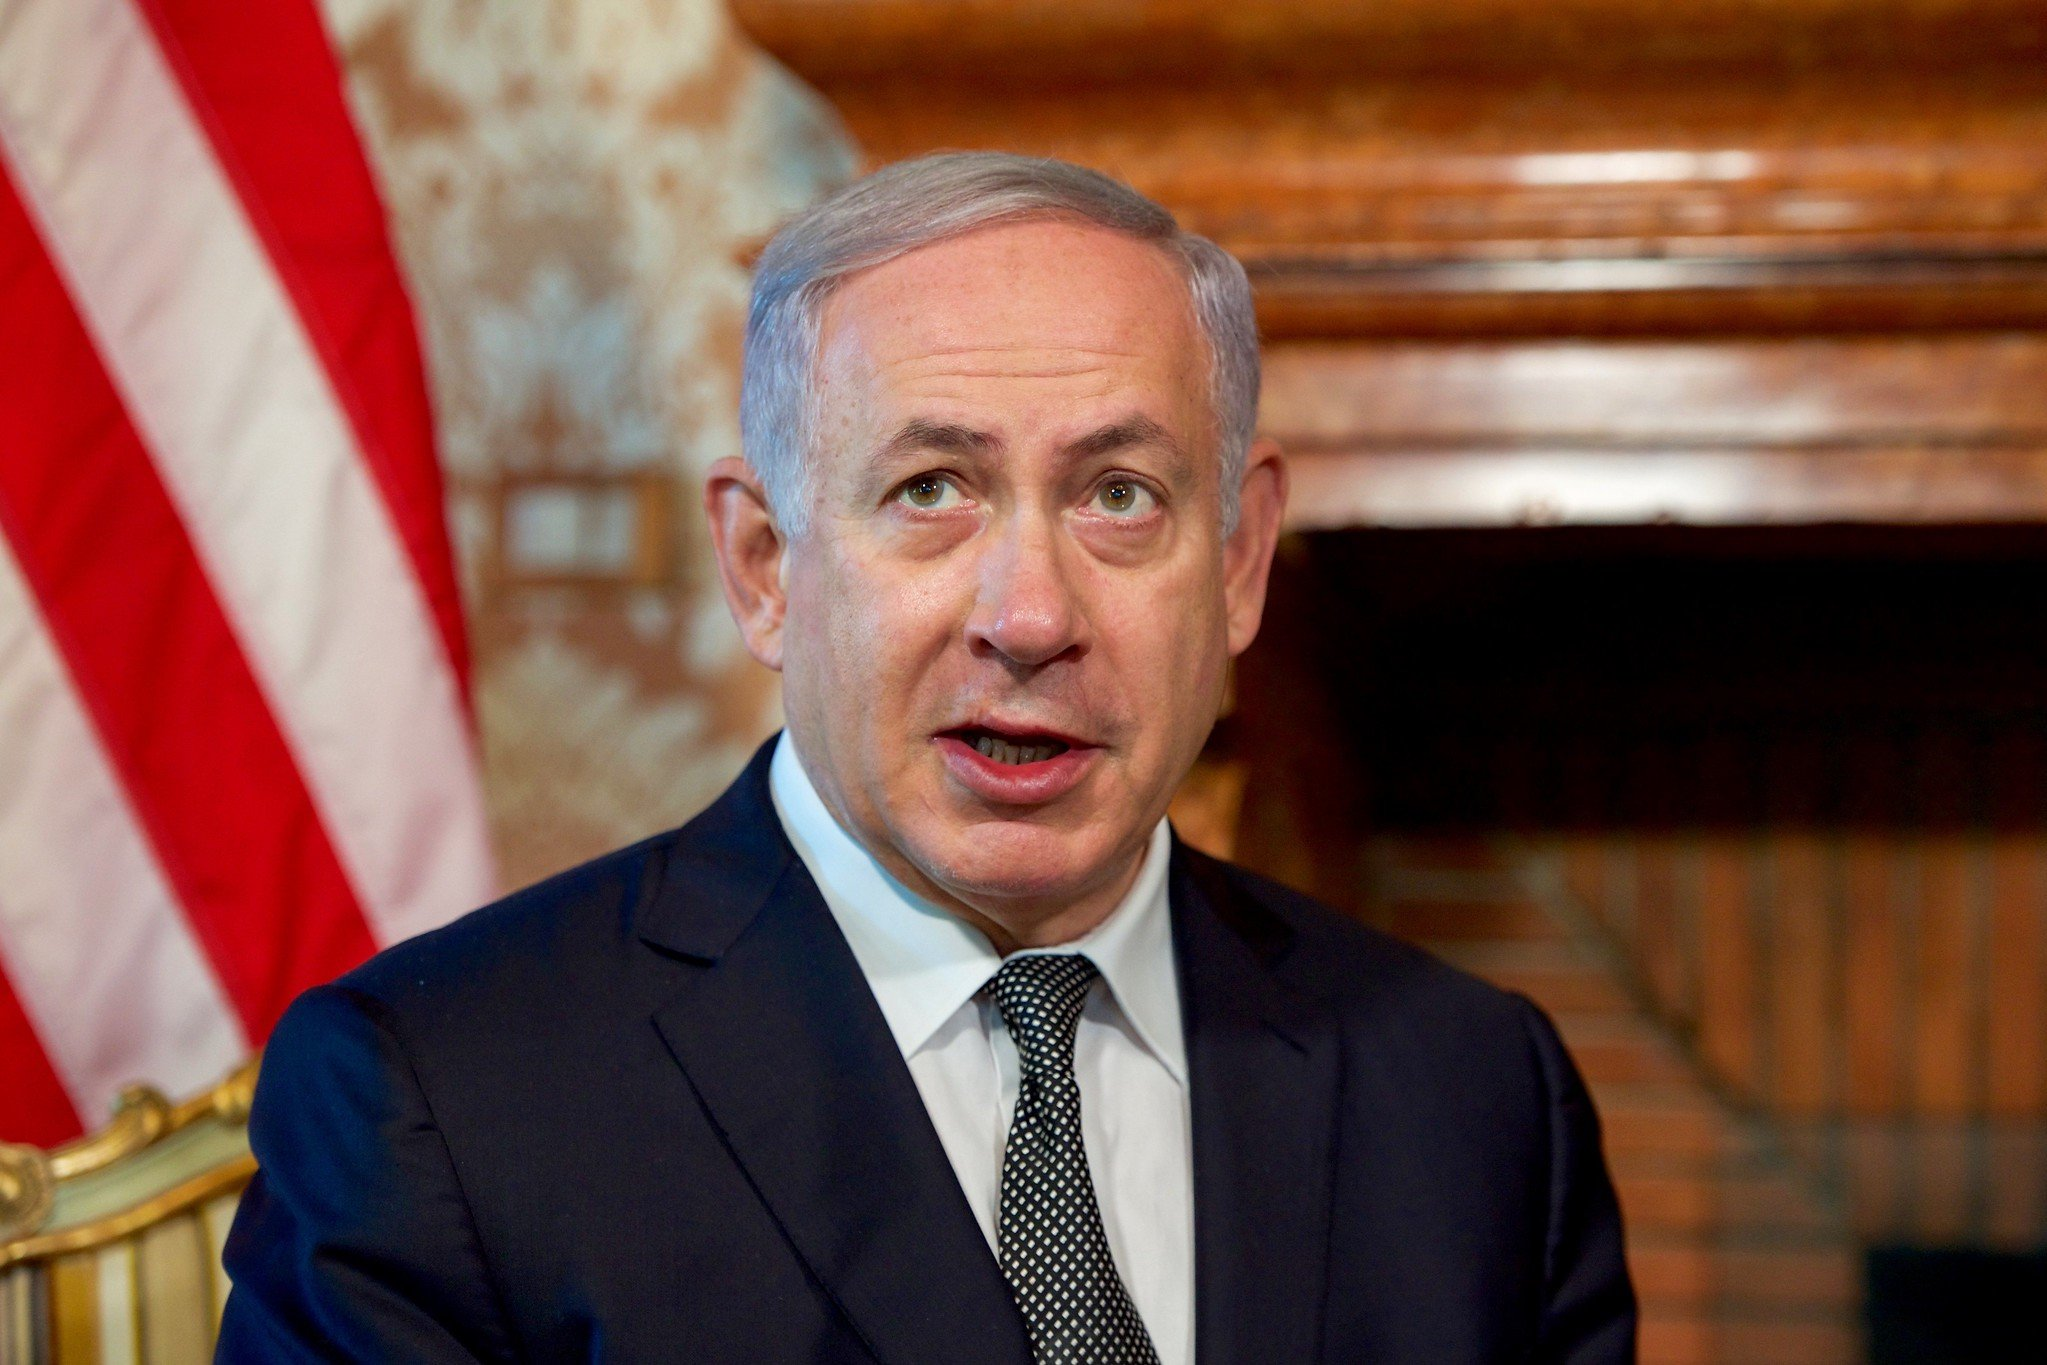 Netanyahu's Future At Risk As Israel Heads To New Election